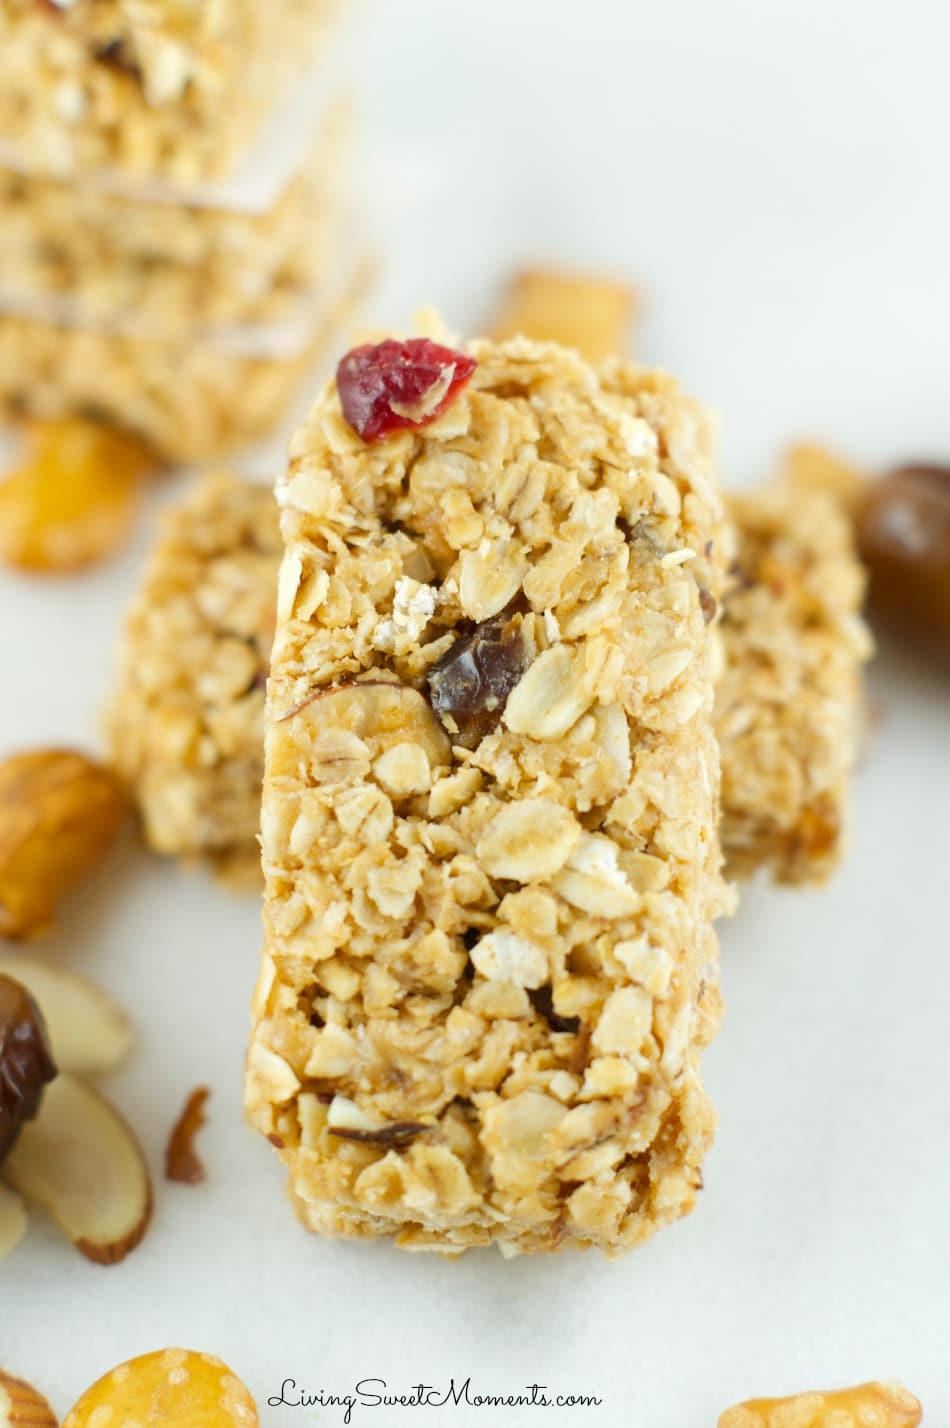 These chewy no bake Sweet And Salty Granola Bars are made with dried fruit, nuts and pretzel pieces. Perfect snack for kids and adults alike!